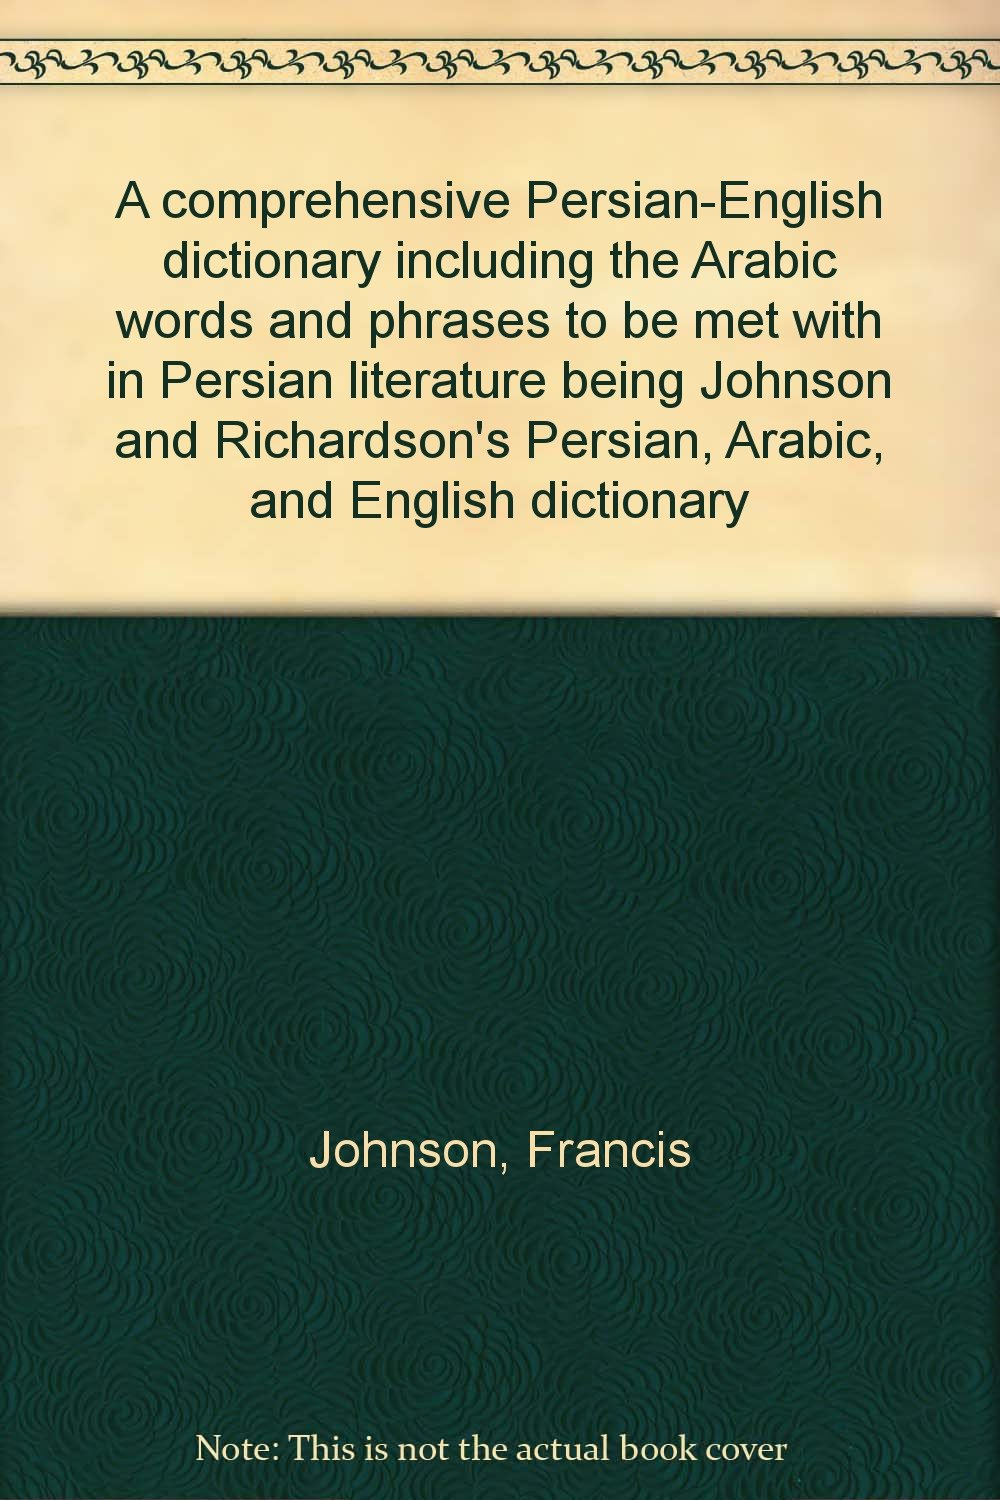 A comprehensive Persian-English dictionary including the